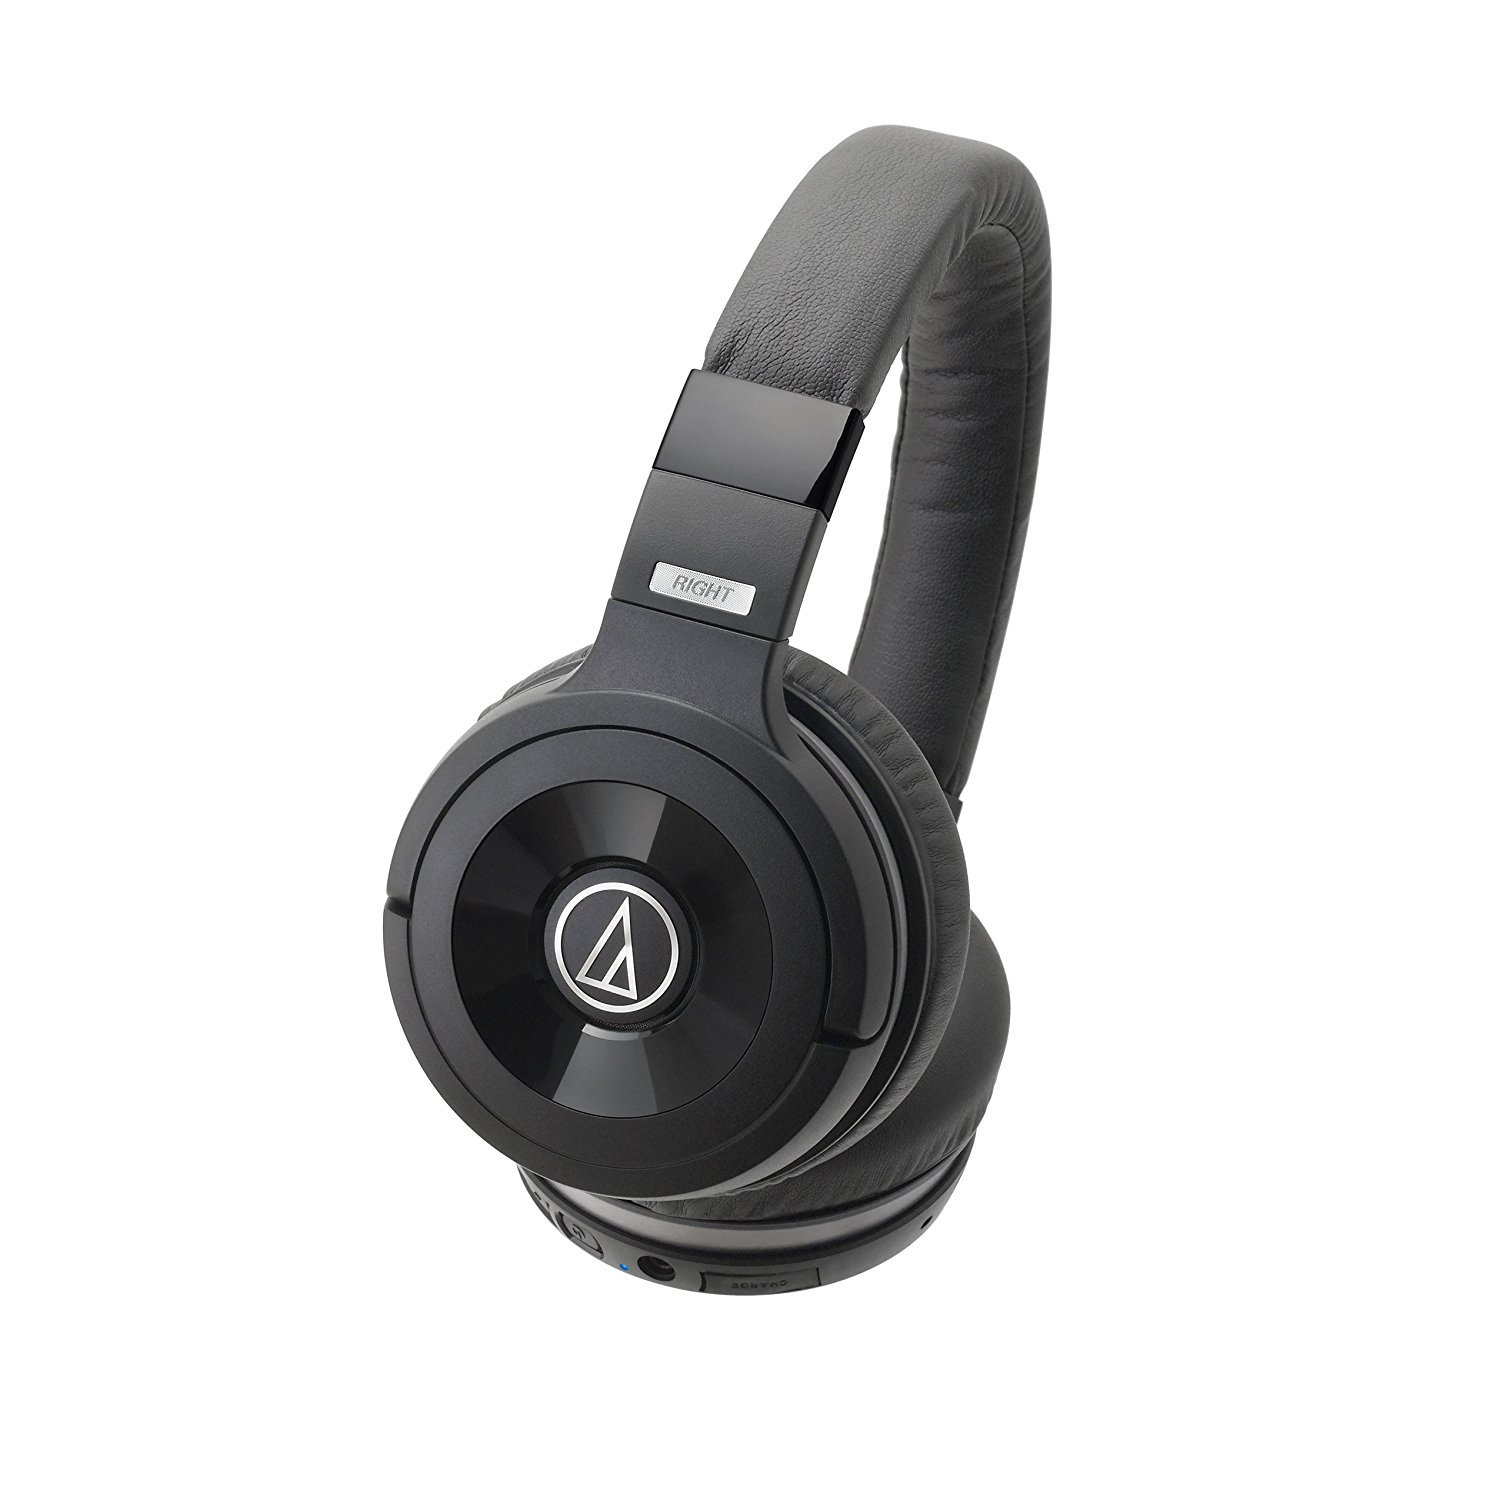 Image of Audio-Technica ATH-WS99BT Solid Bass Bluetooth Wireless Over-Ear Headphones with Built-In Mic & Control